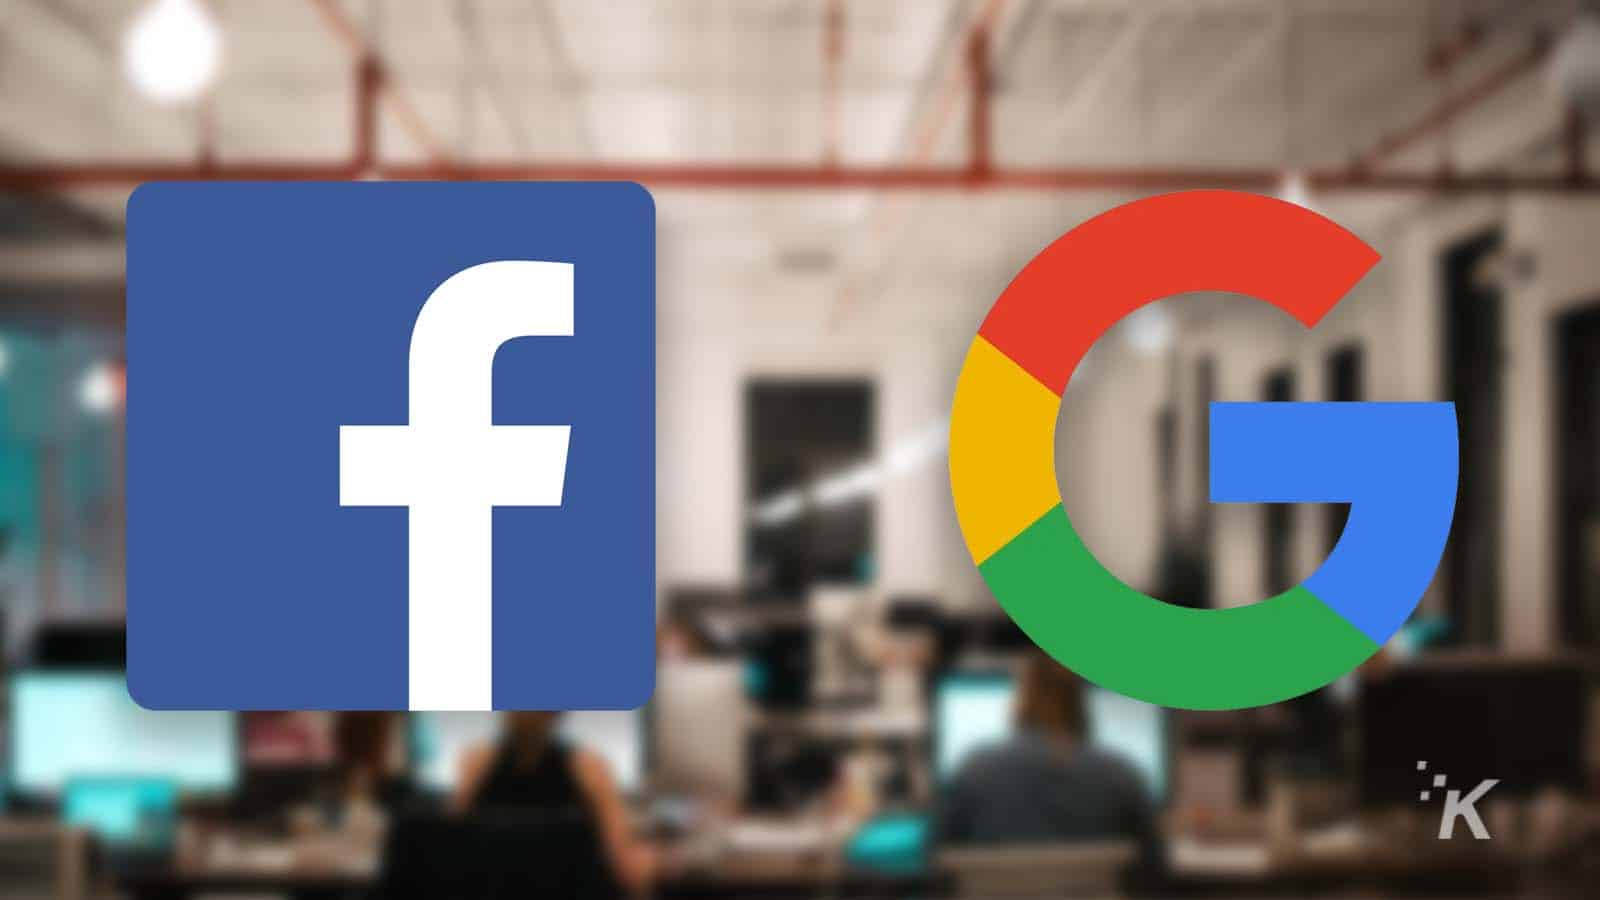 facebook and google logos on blurred background